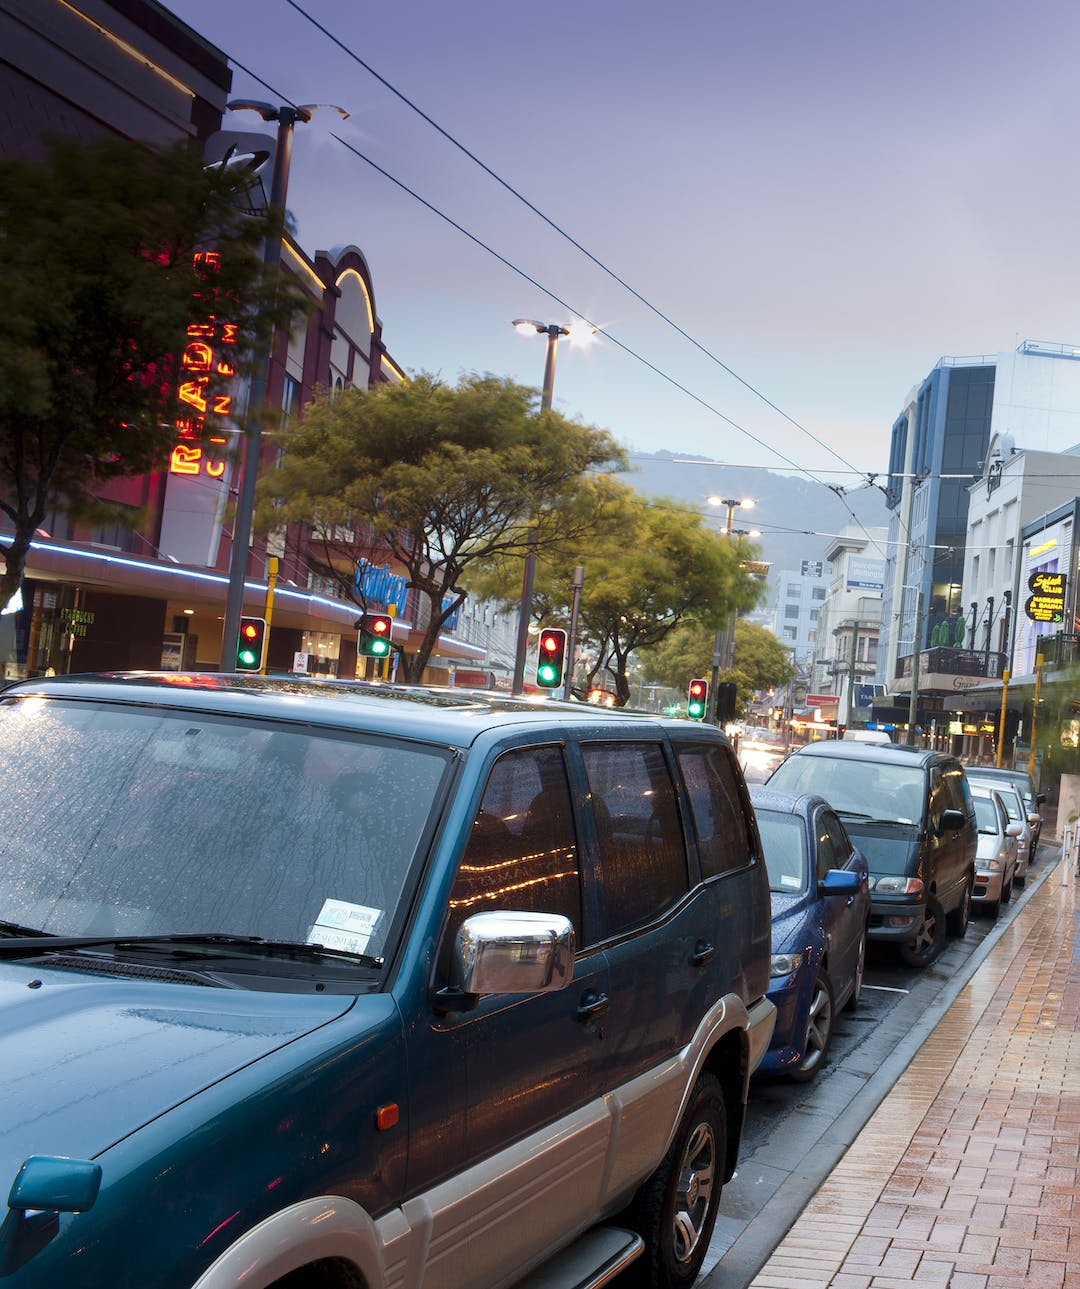 A photograph of a section of Courtenay Place, Wellington with a line of cars parked on the street.